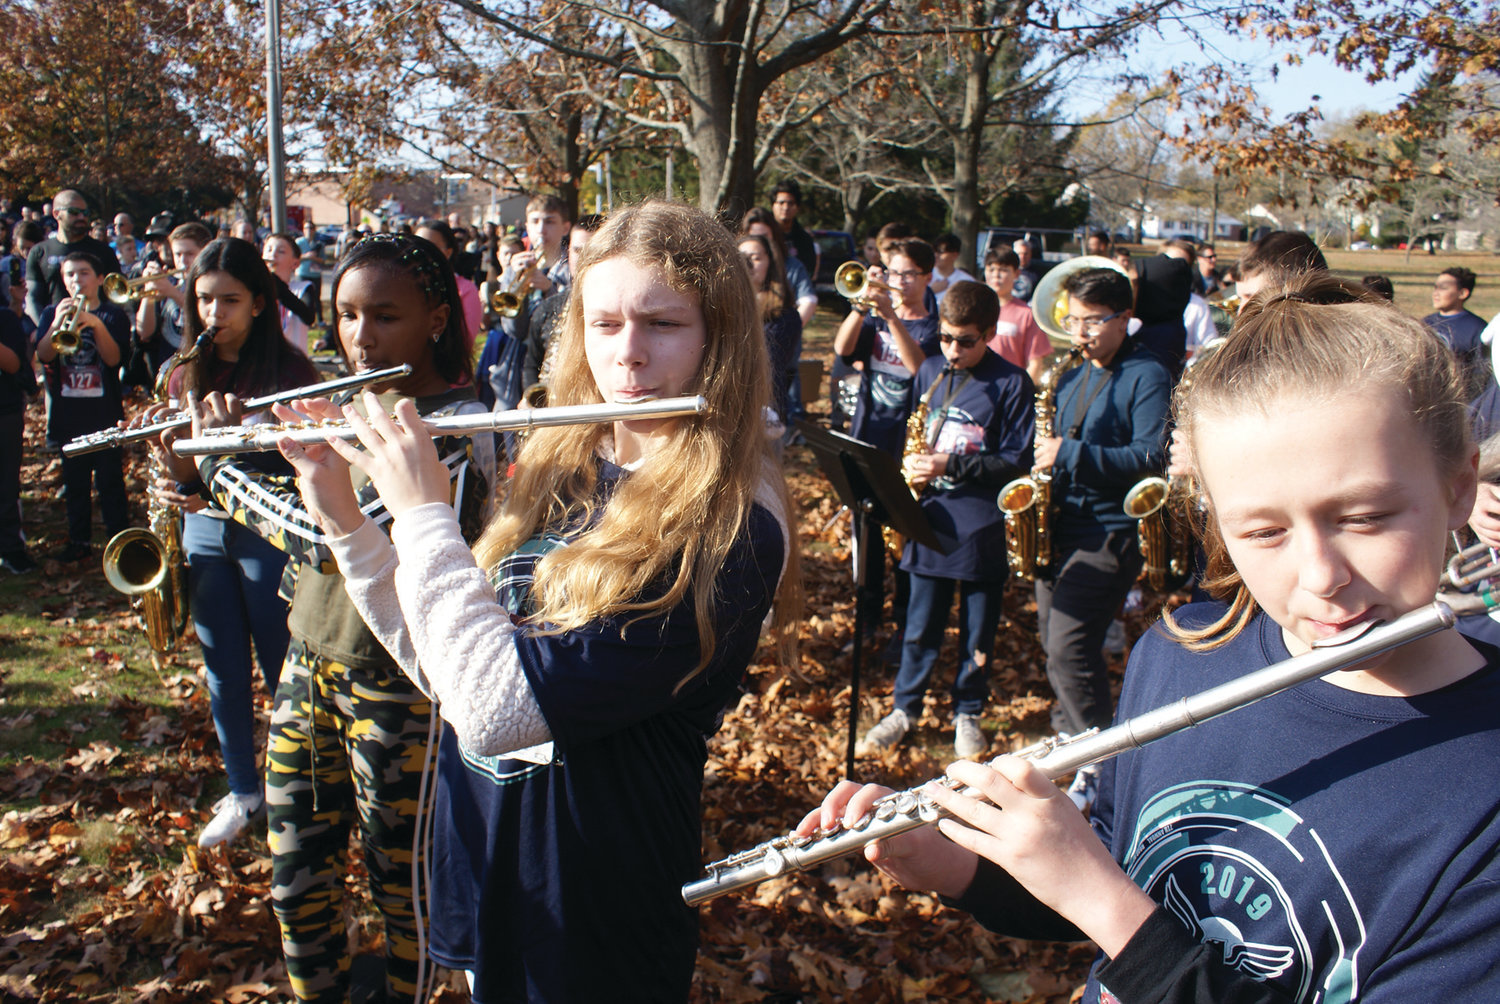 AND THE BAND PLAYED ON: The Park View Band performed the national anthem before the start of Monday's 5K.